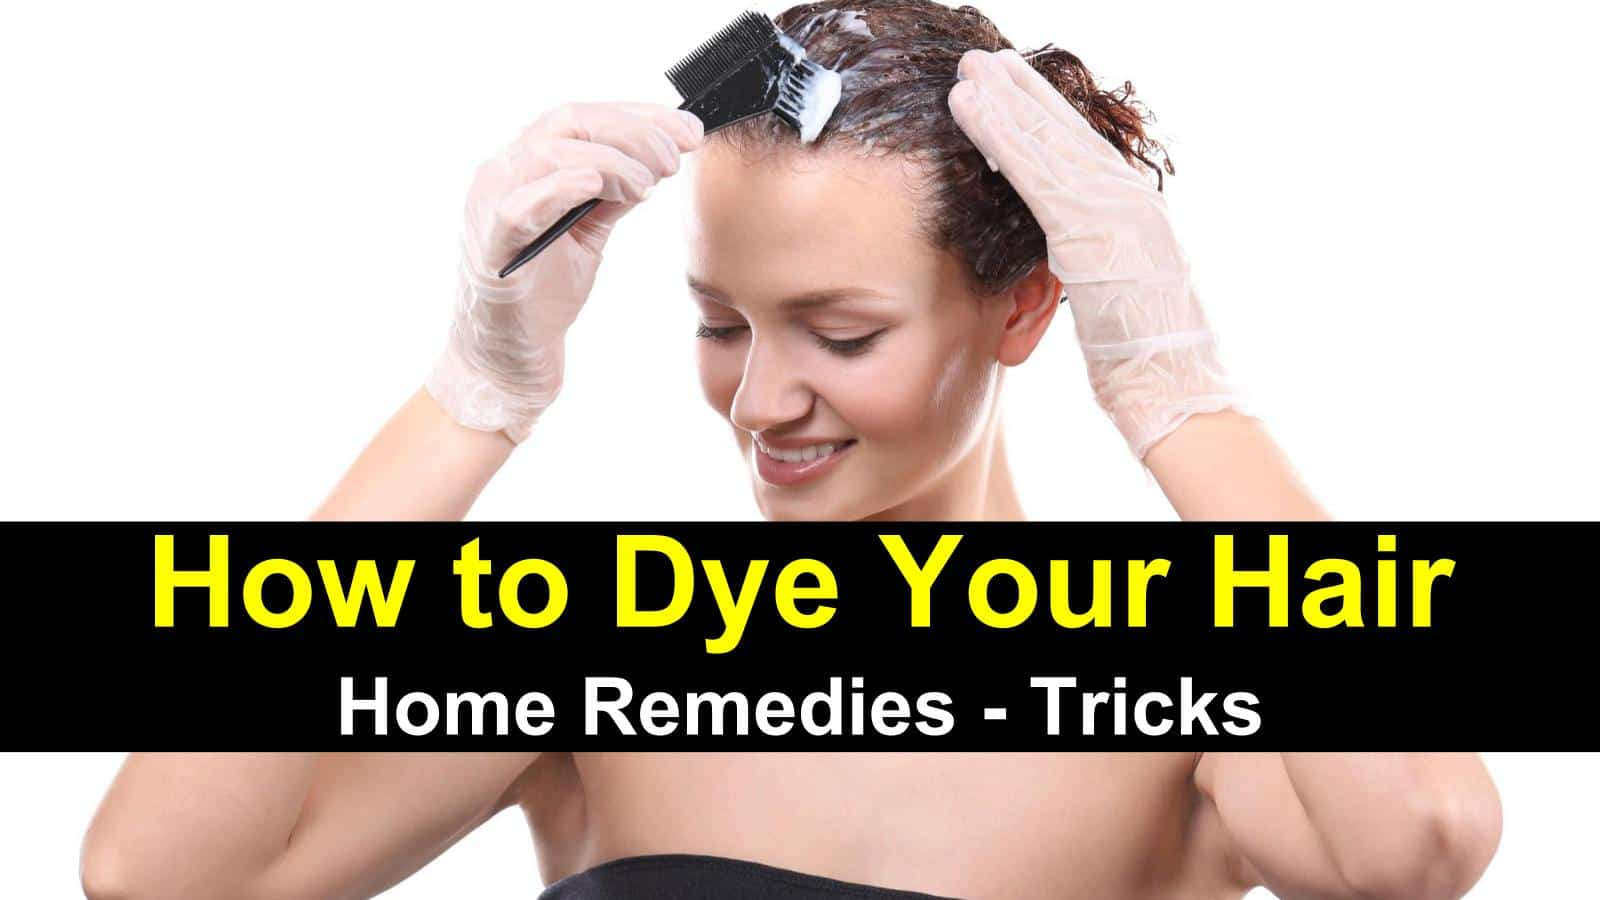 How to Dye Your Hair - Home Remedies - Tricks